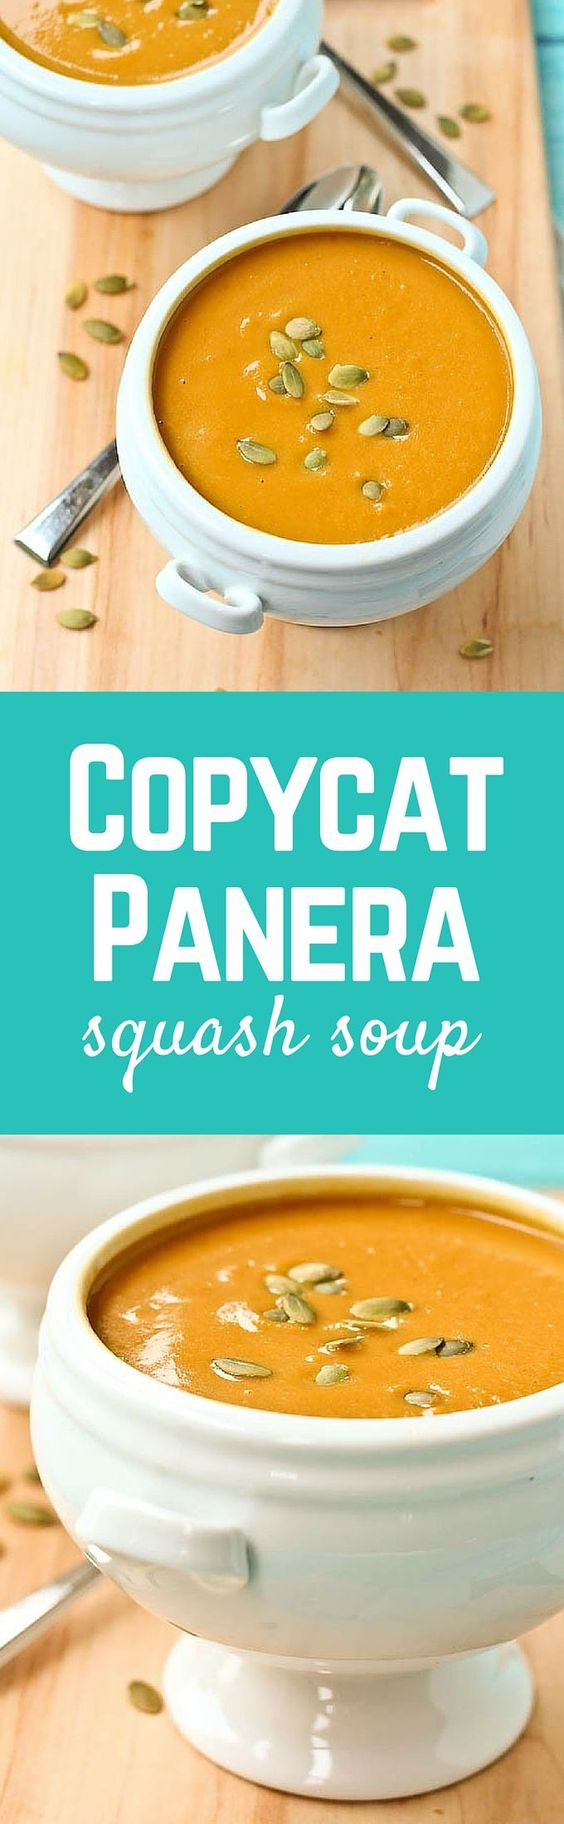 Copycat Panera Butternut Squash Soup Recipe | Rachel Cooks - The BEST Homemade Soups Recipes - Easy, Quick and Yummy Lunch and Dinner Family Favorites Meals Ideas #soup #souprecipes #homemadesoup #soups #easysouprecipes #easyrecipes #lunchrecipes #fallrecipes #winterrecipes